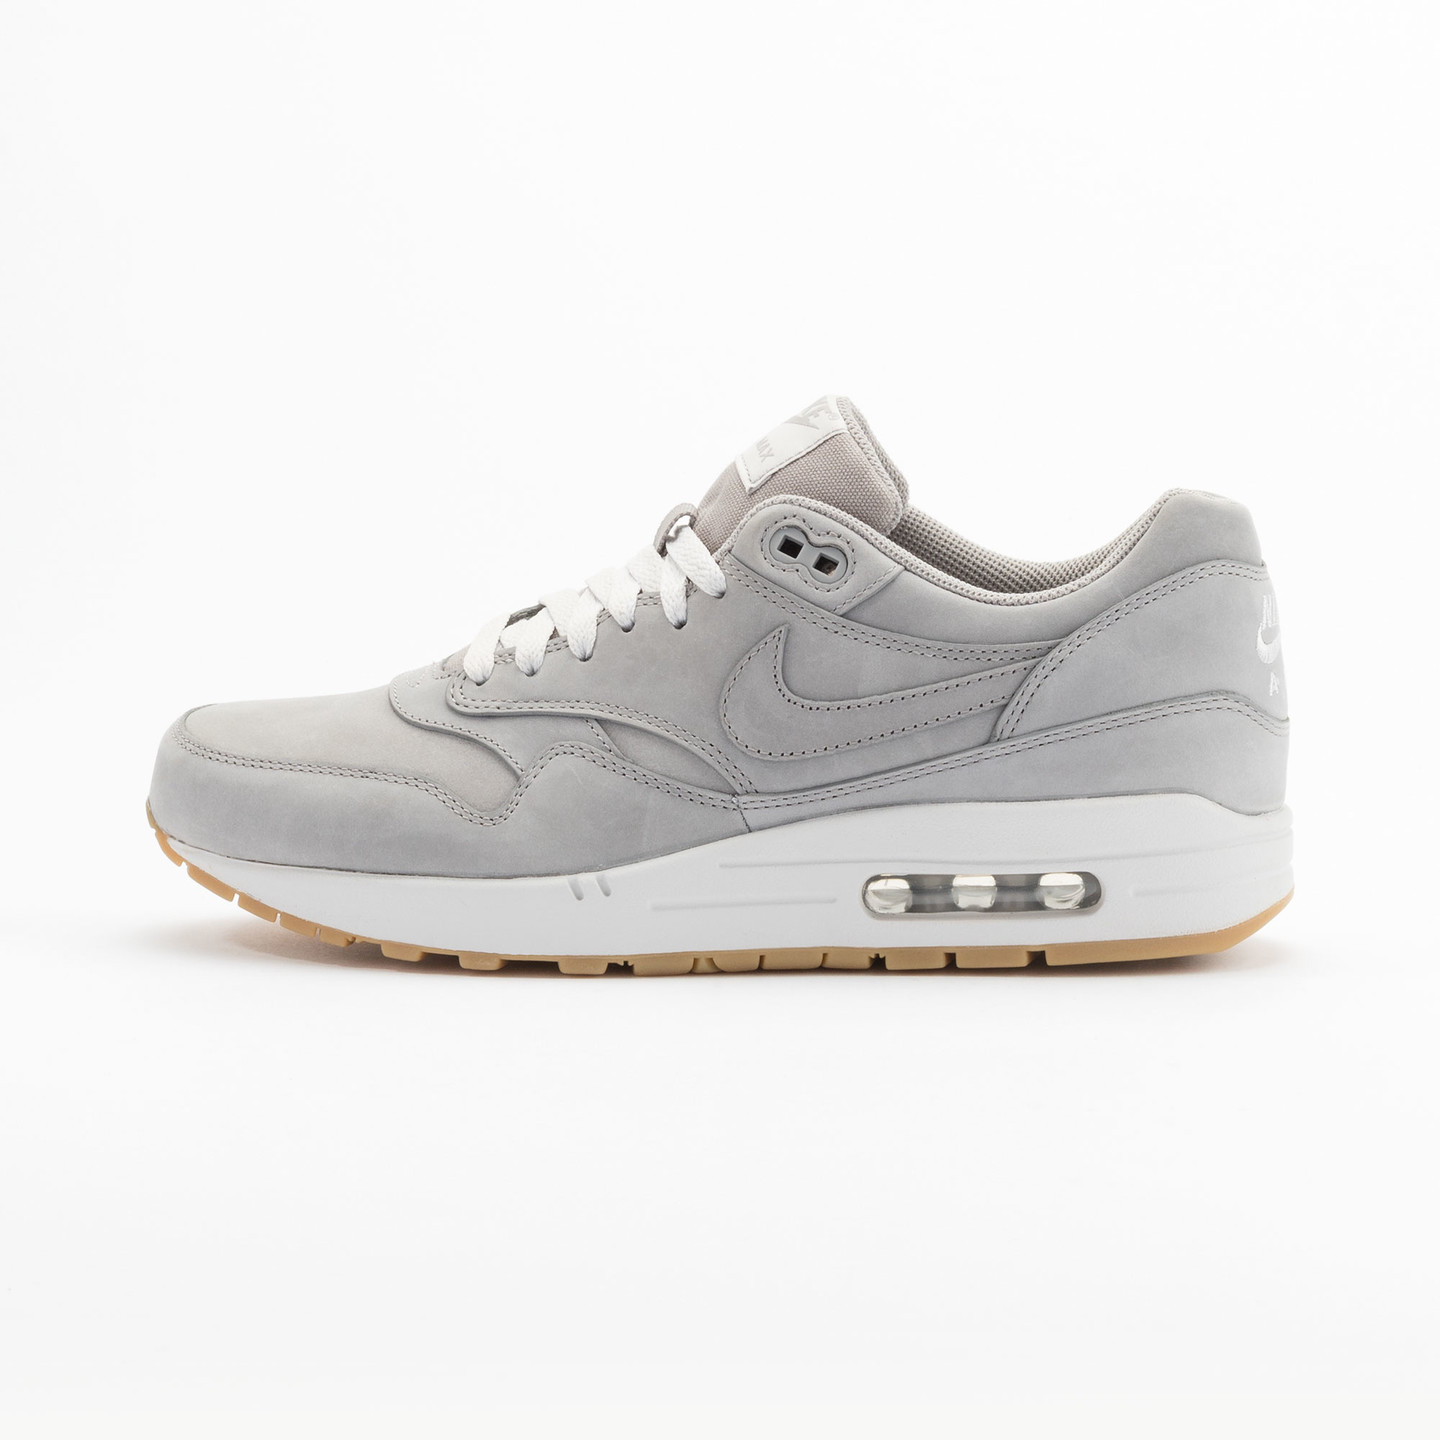 Nike Air Max Leather Premium Medium Grey 705282-005-42.5